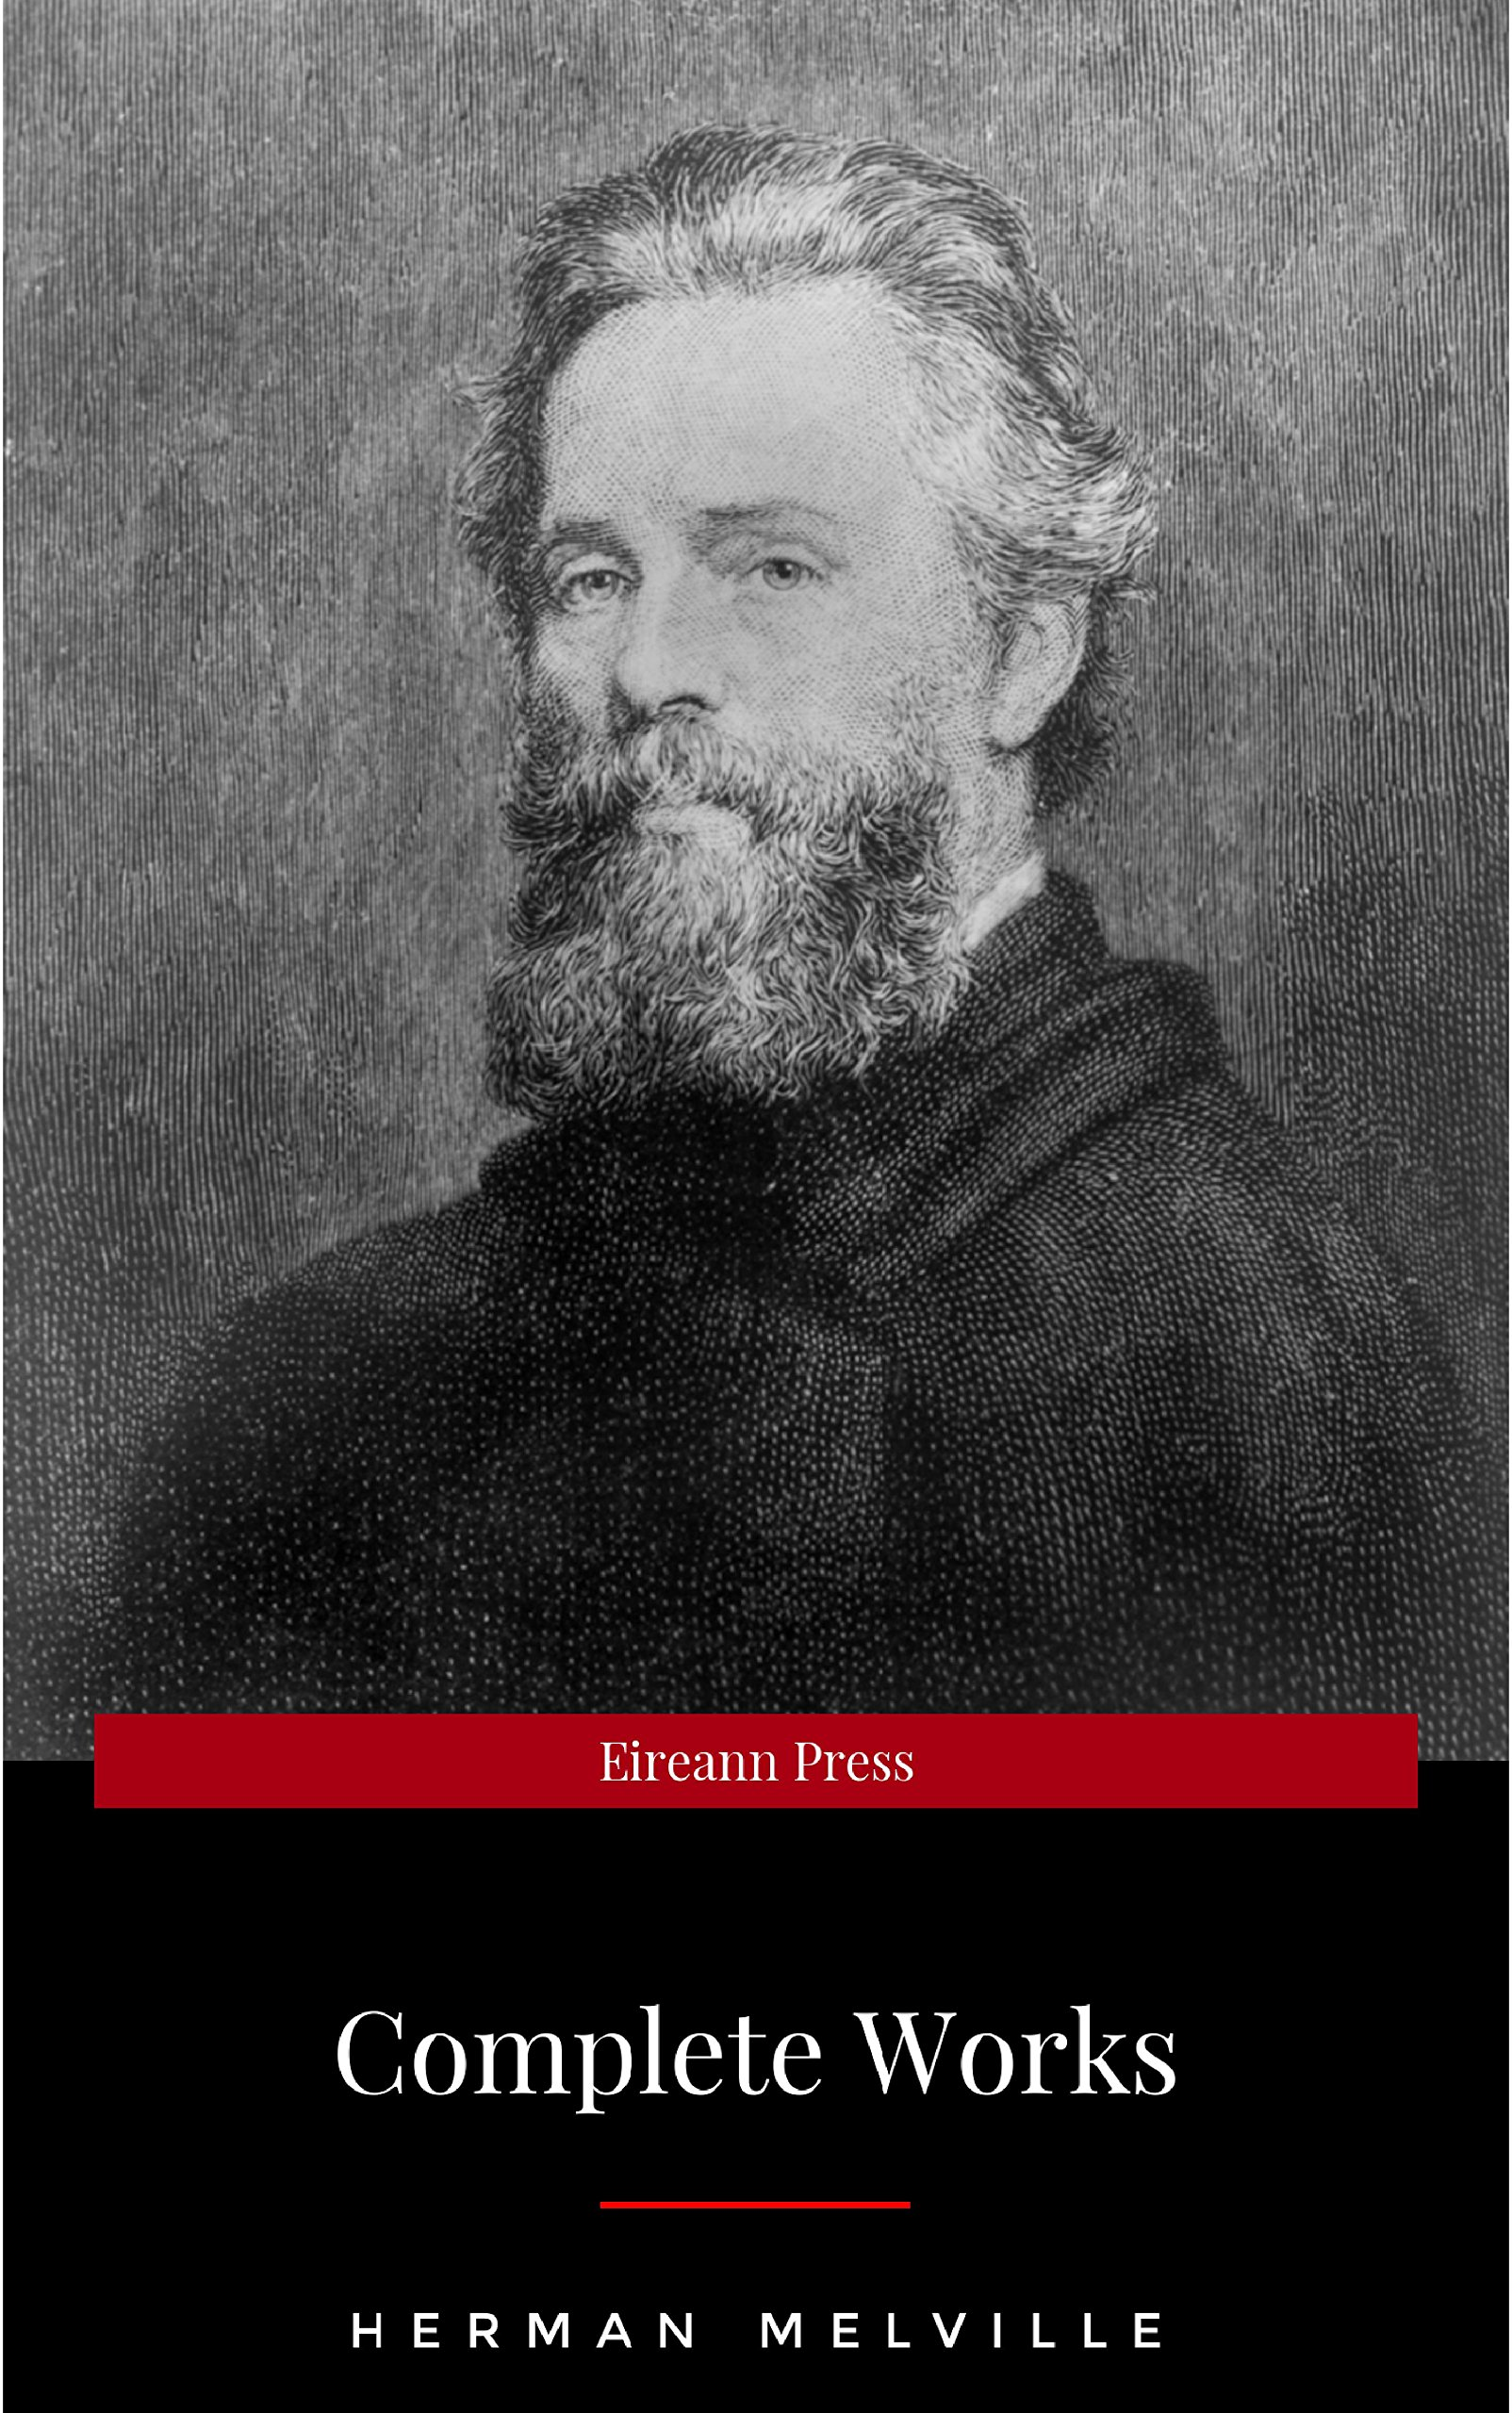 The Complete Works of Herman Melville (15 Complete Works of Herman Melville Including Moby Dick Omoo The Confidence-Man The Piazza Tales I and My Chimney ... Israel Potter And More) (English Edition)